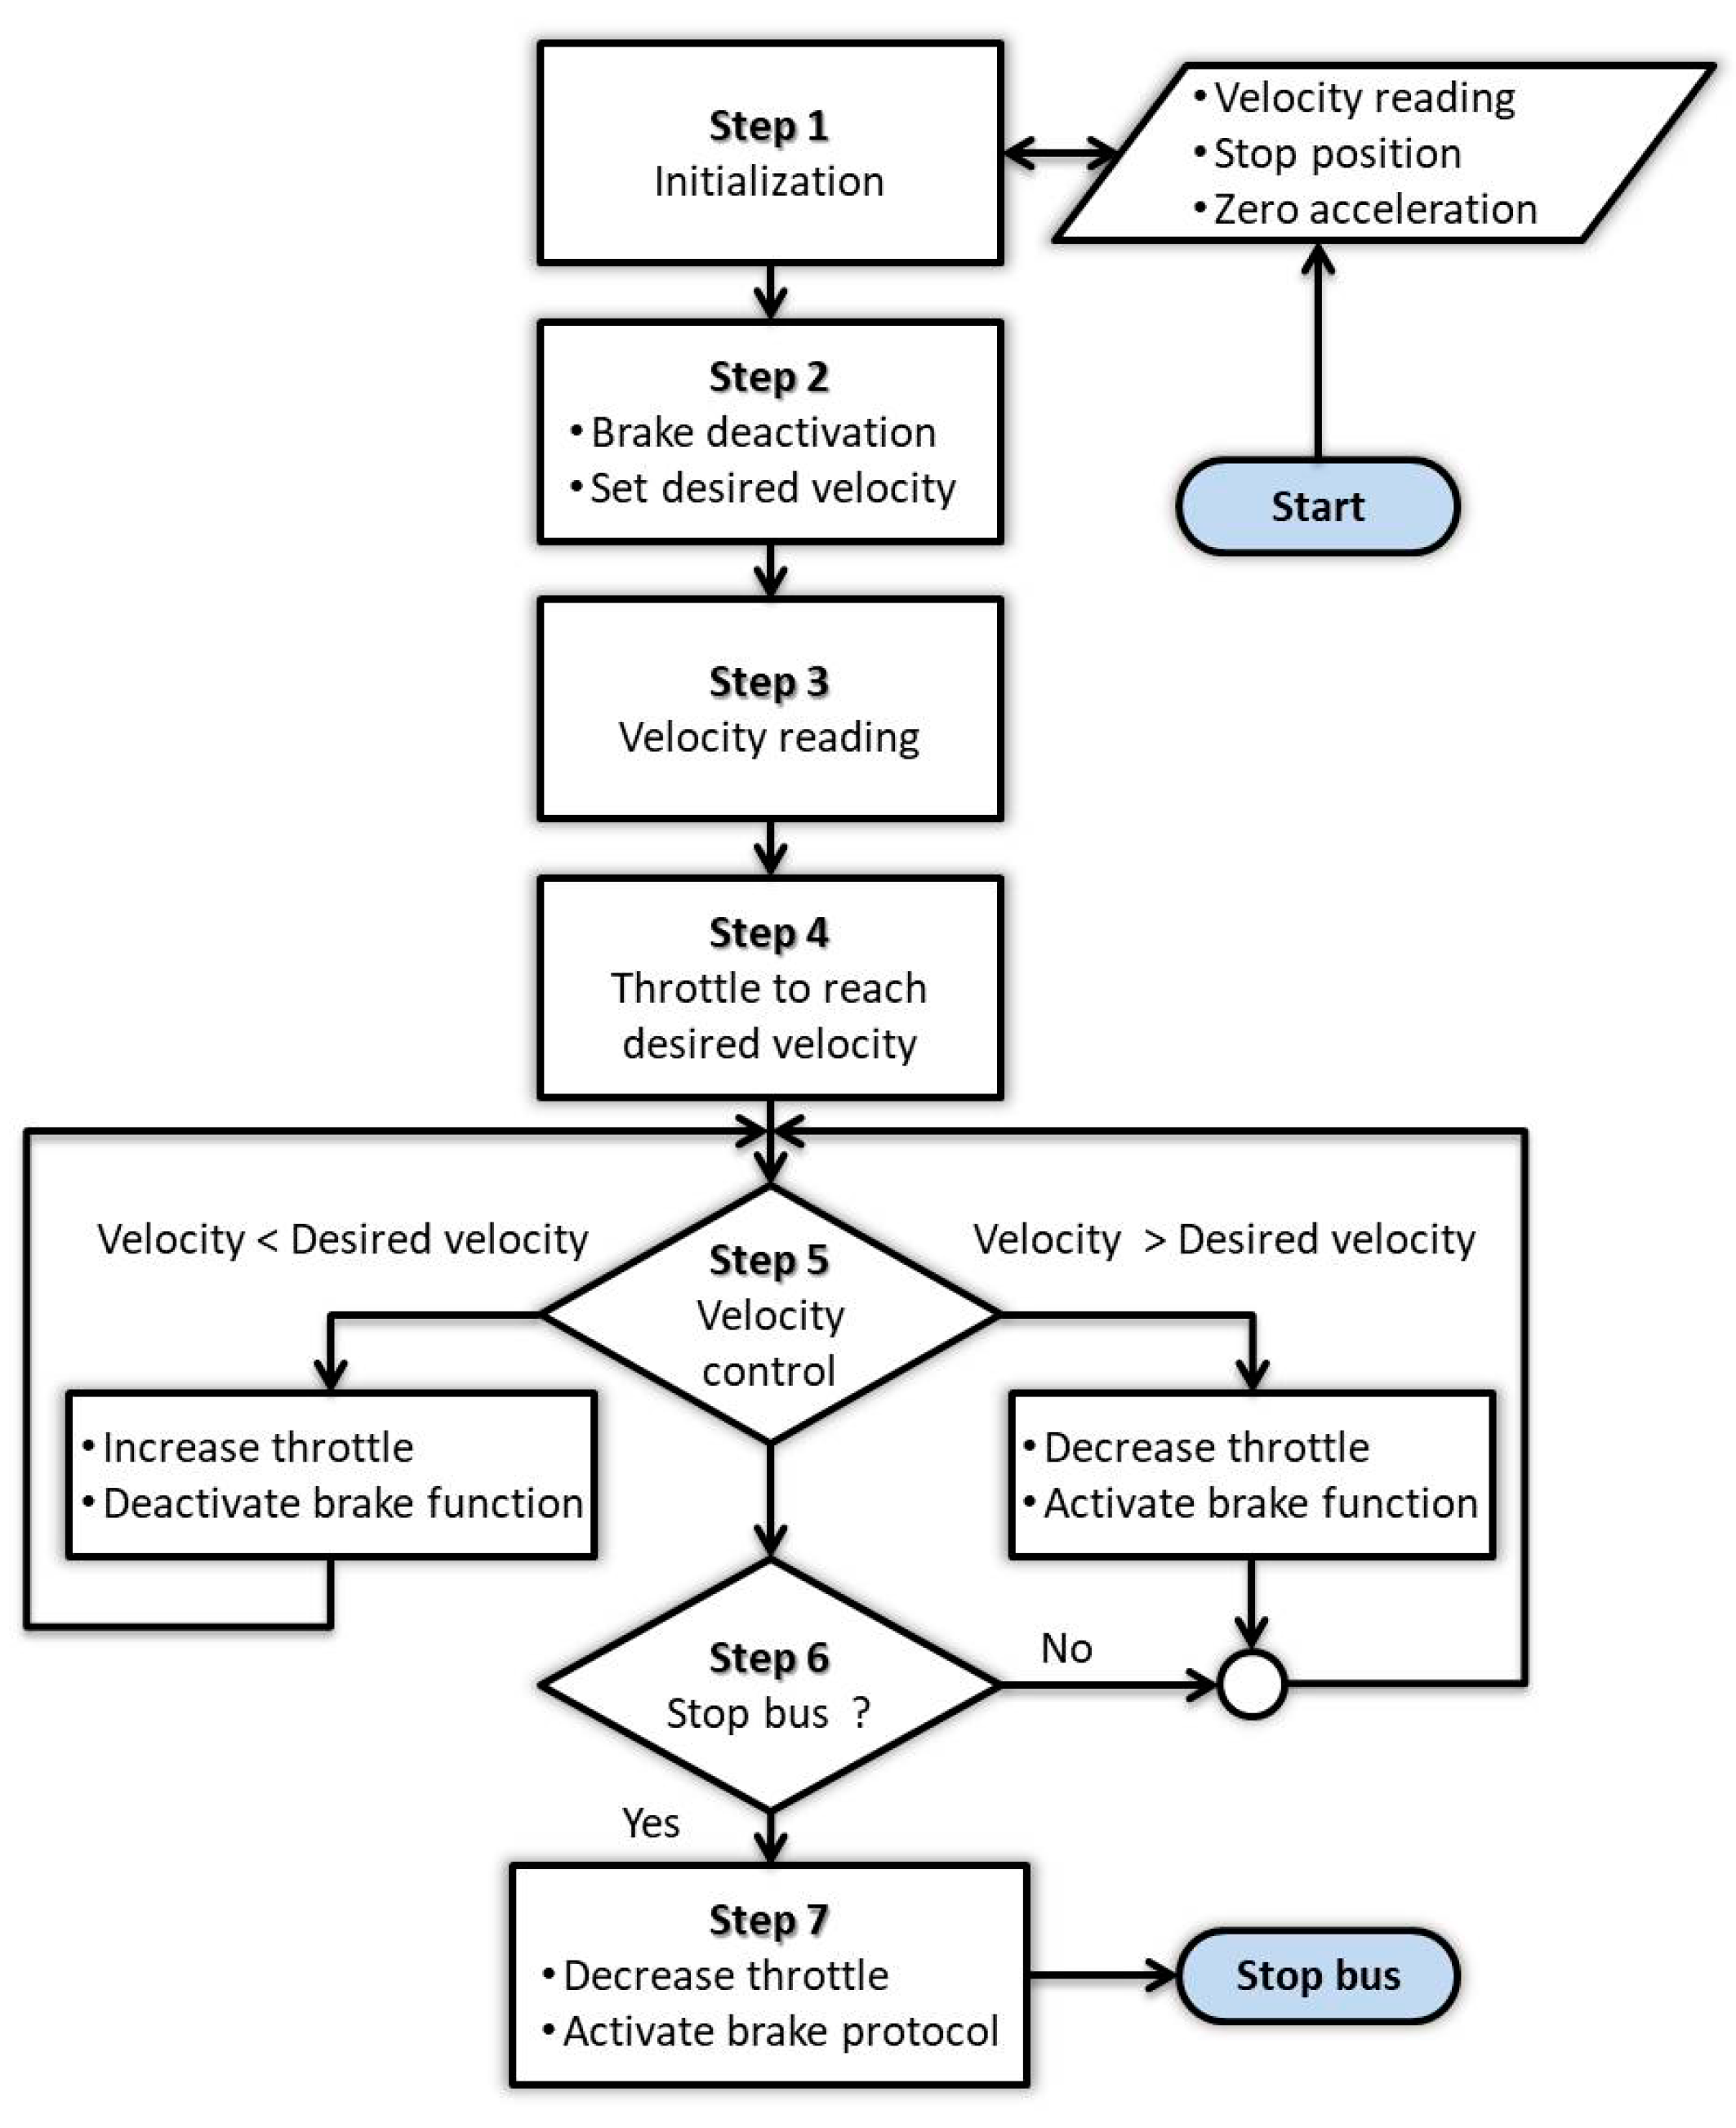 Applied sciences free full text an experimental platform for implemented flowchart for velocity control applsci 07 01131 g004 nvjuhfo Choice Image